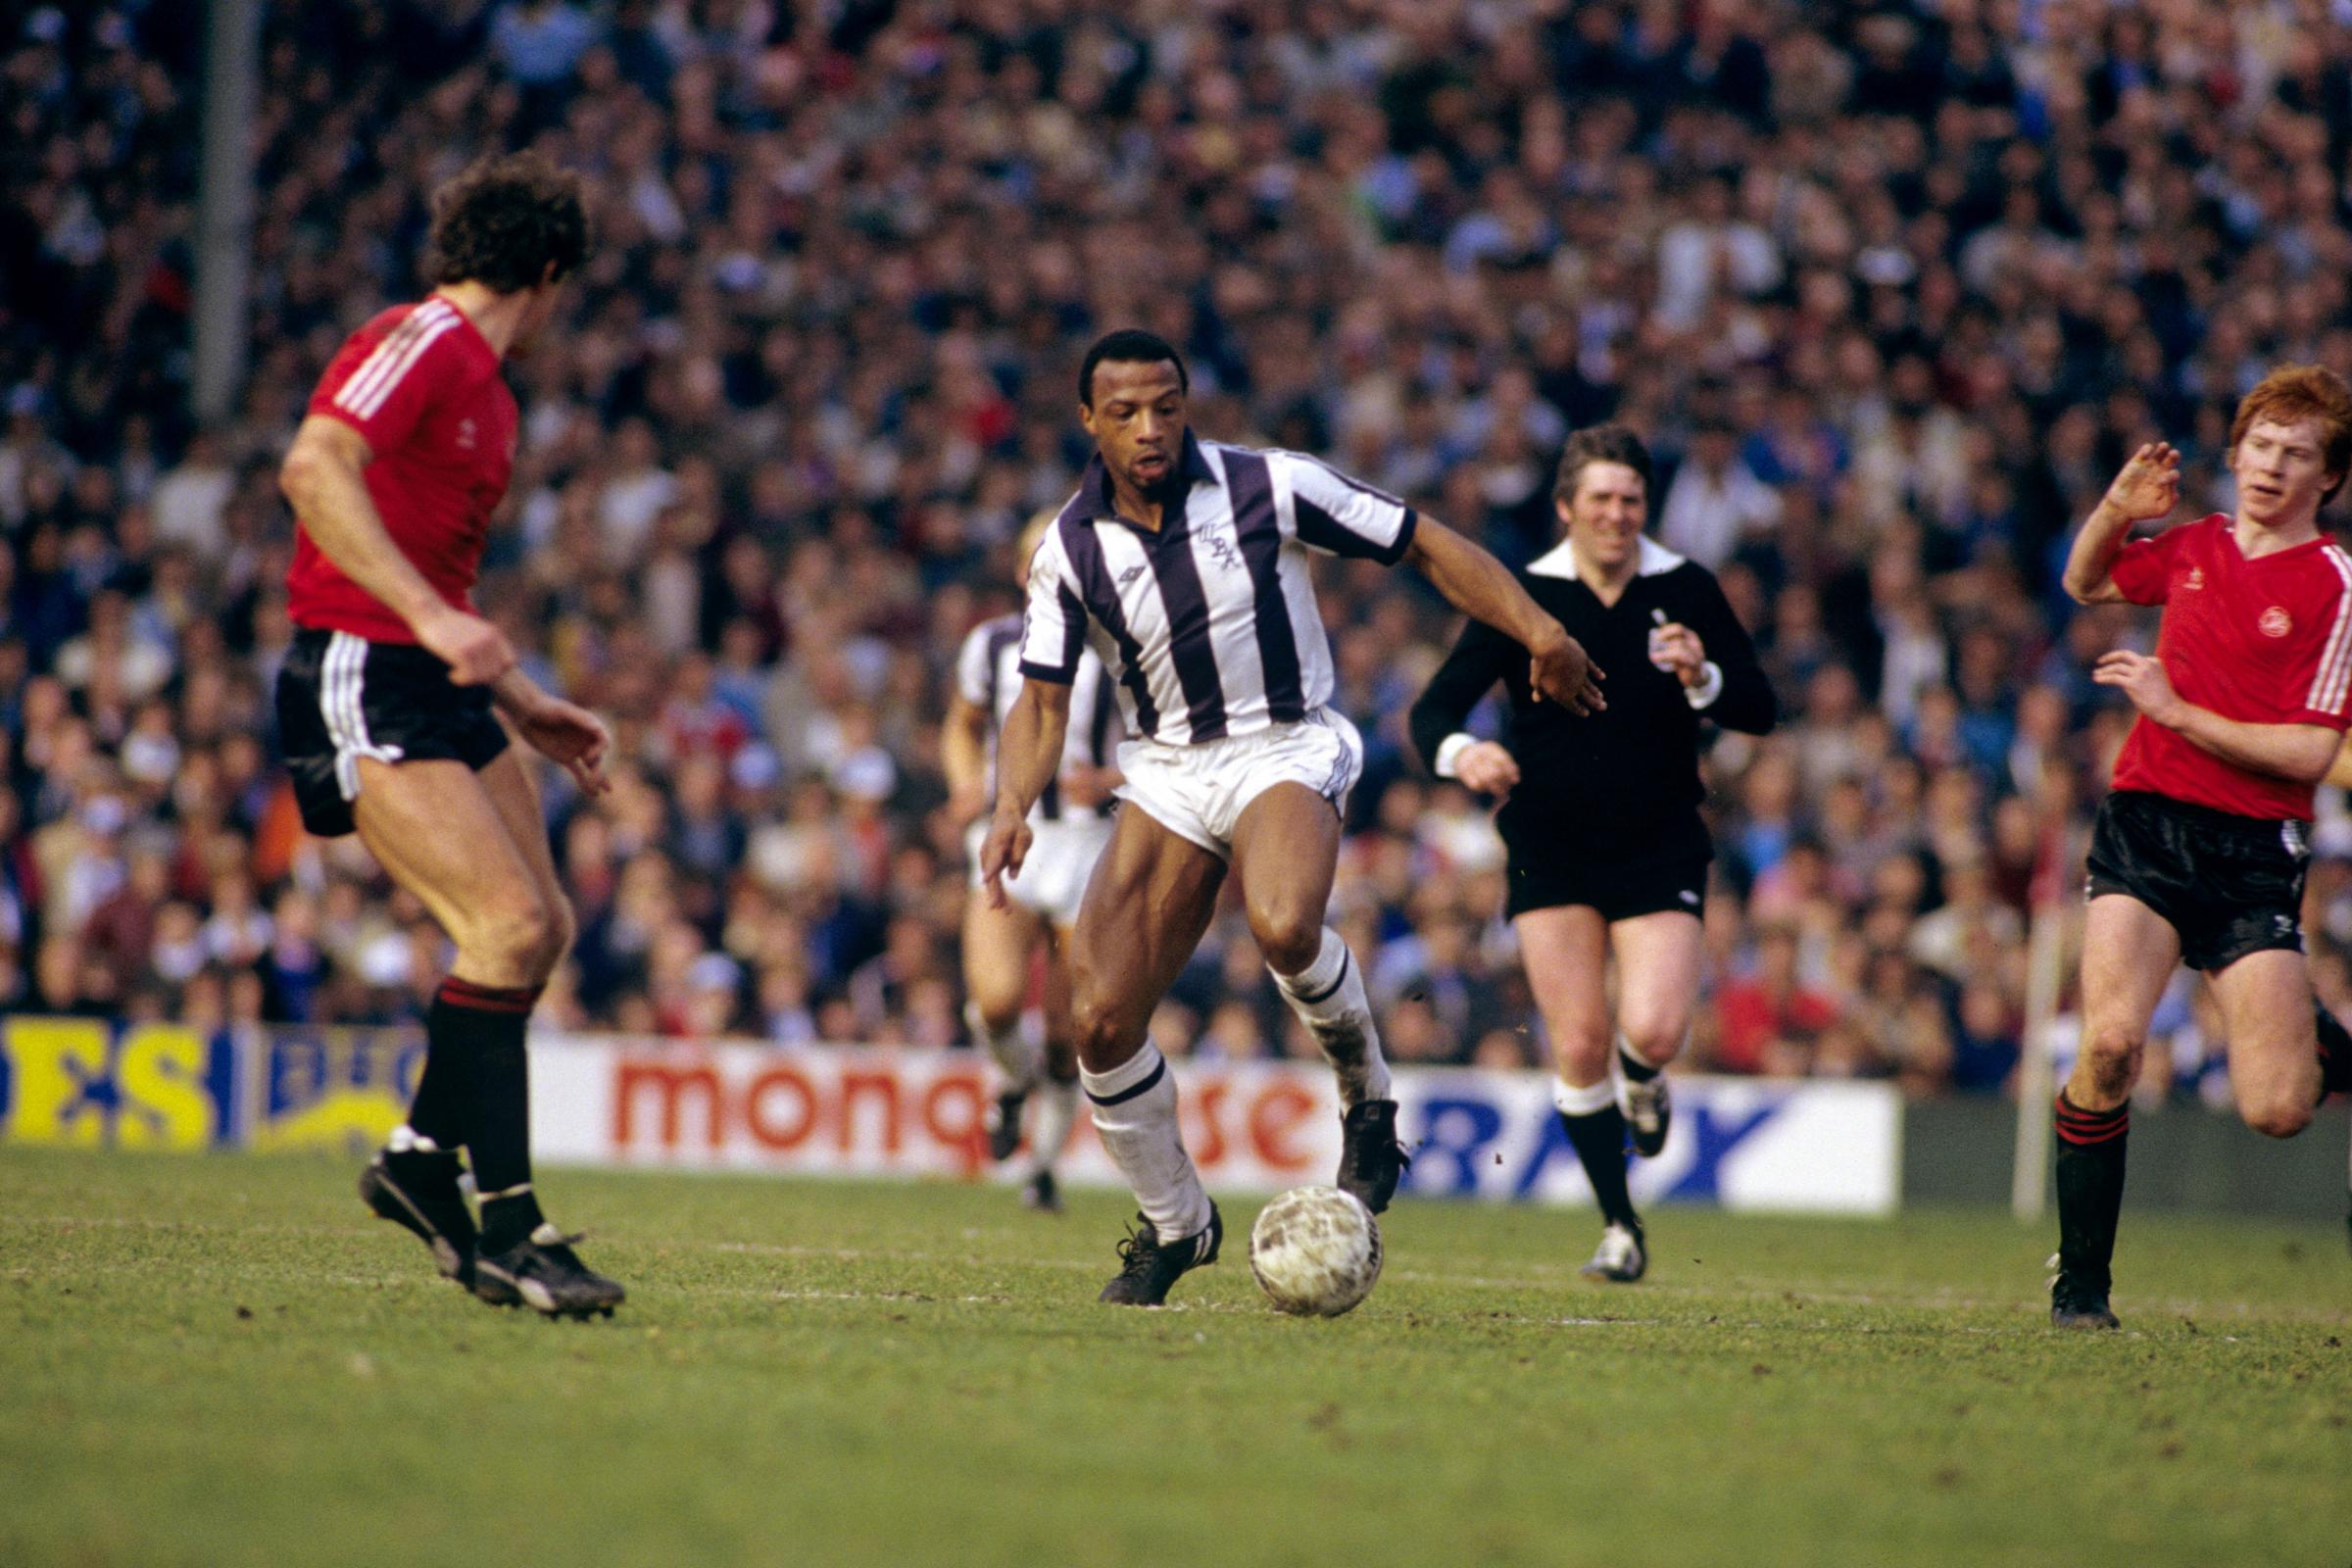 Cyrille Regis forged his reputation as a bustling centre forward with West Brom (Peter Robinson/EMPICS)